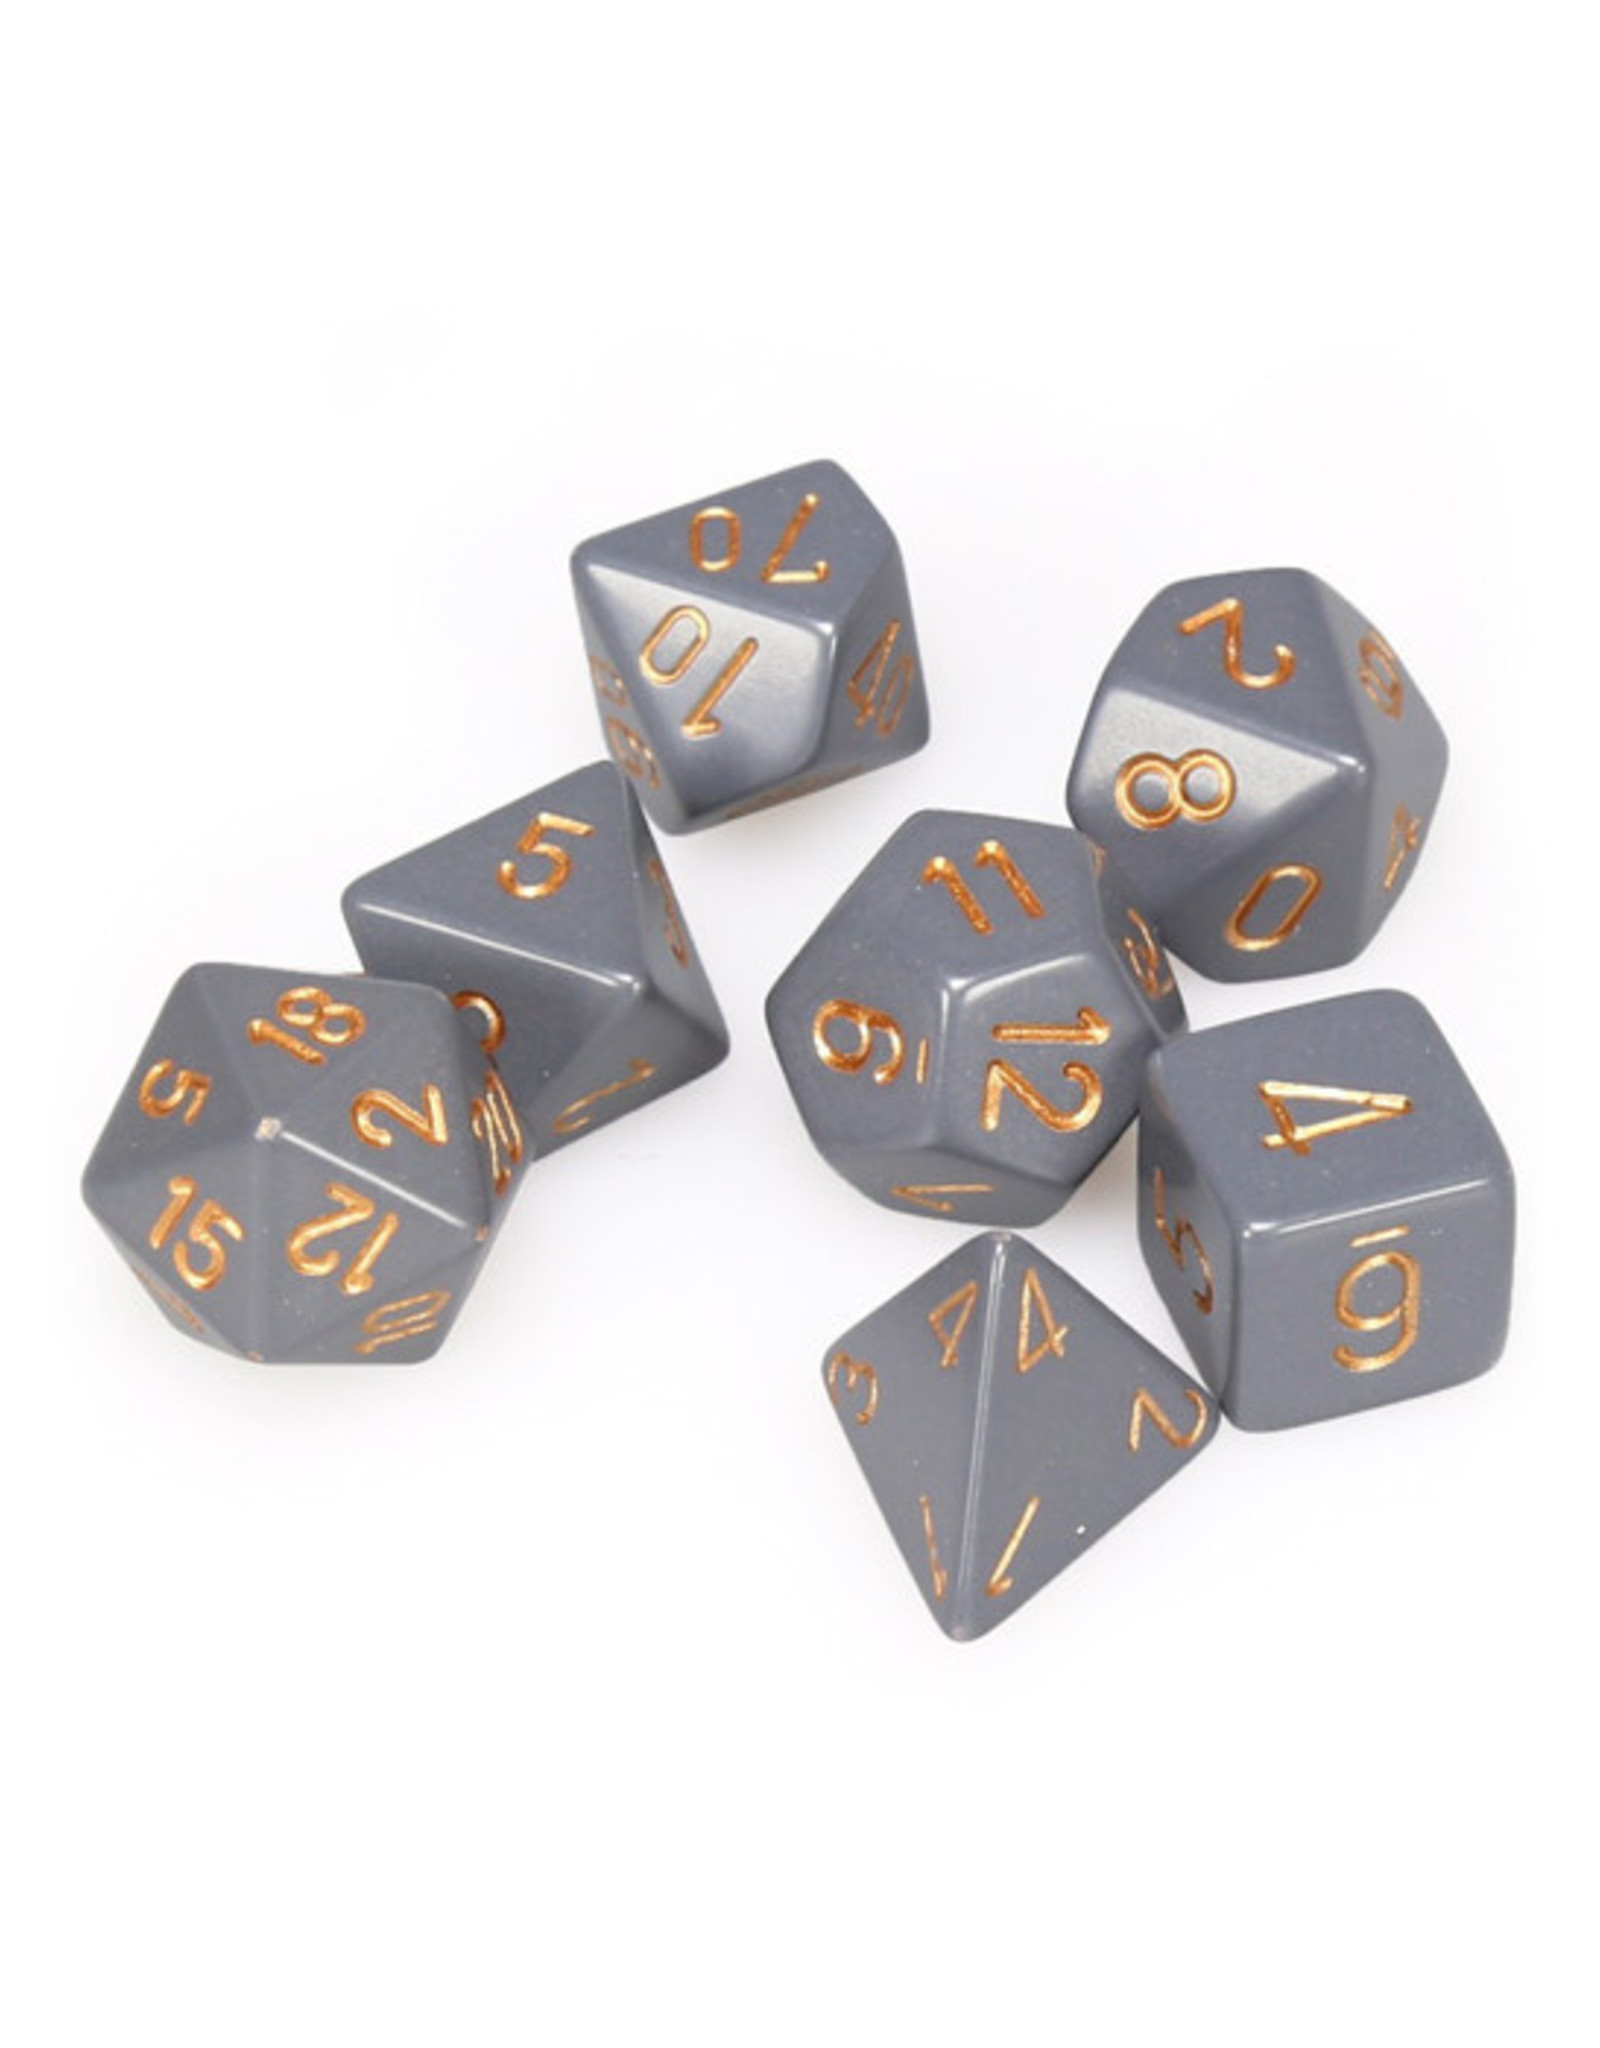 Chessex Chessex: Poly 7 Set - Opaque - Dark Grey w/ Copper